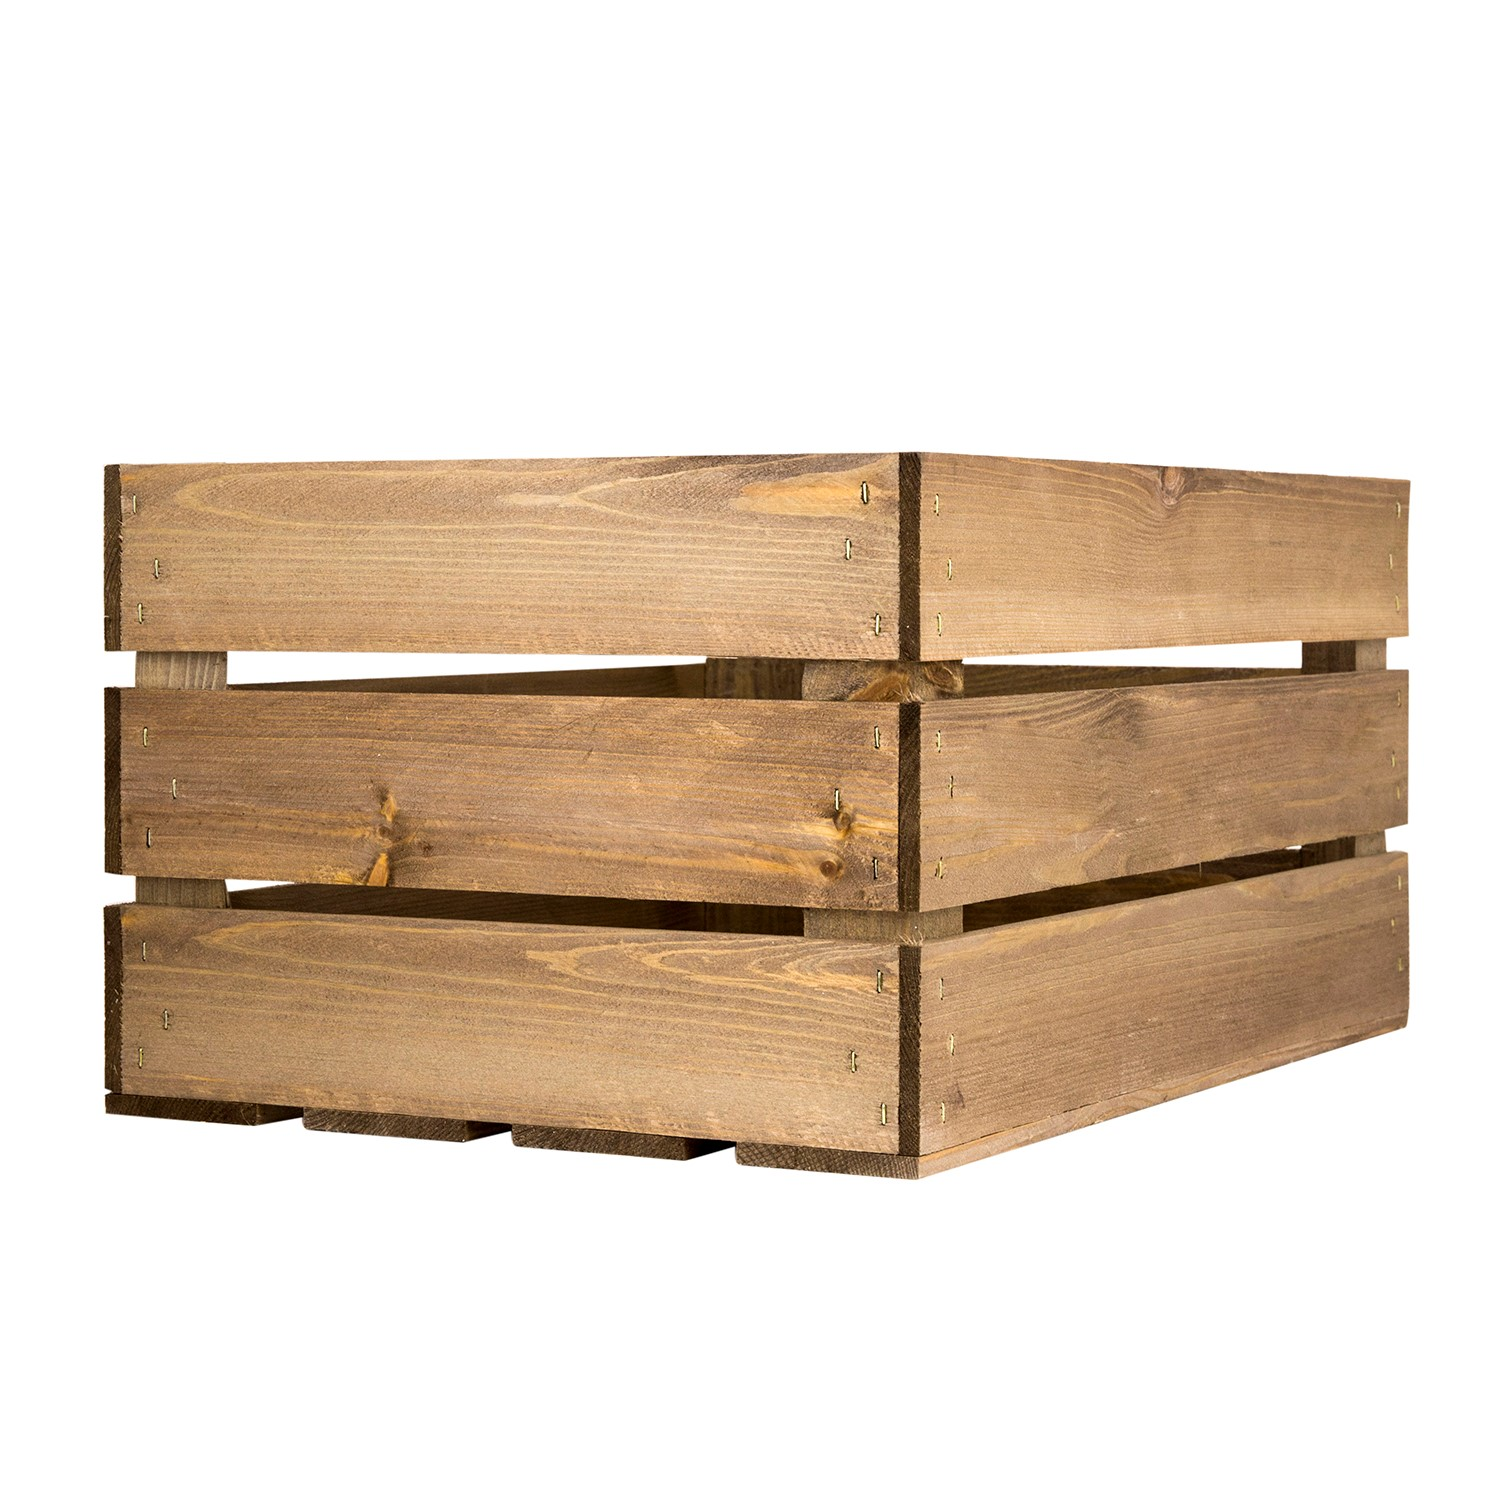 image of large rustic wooden crate